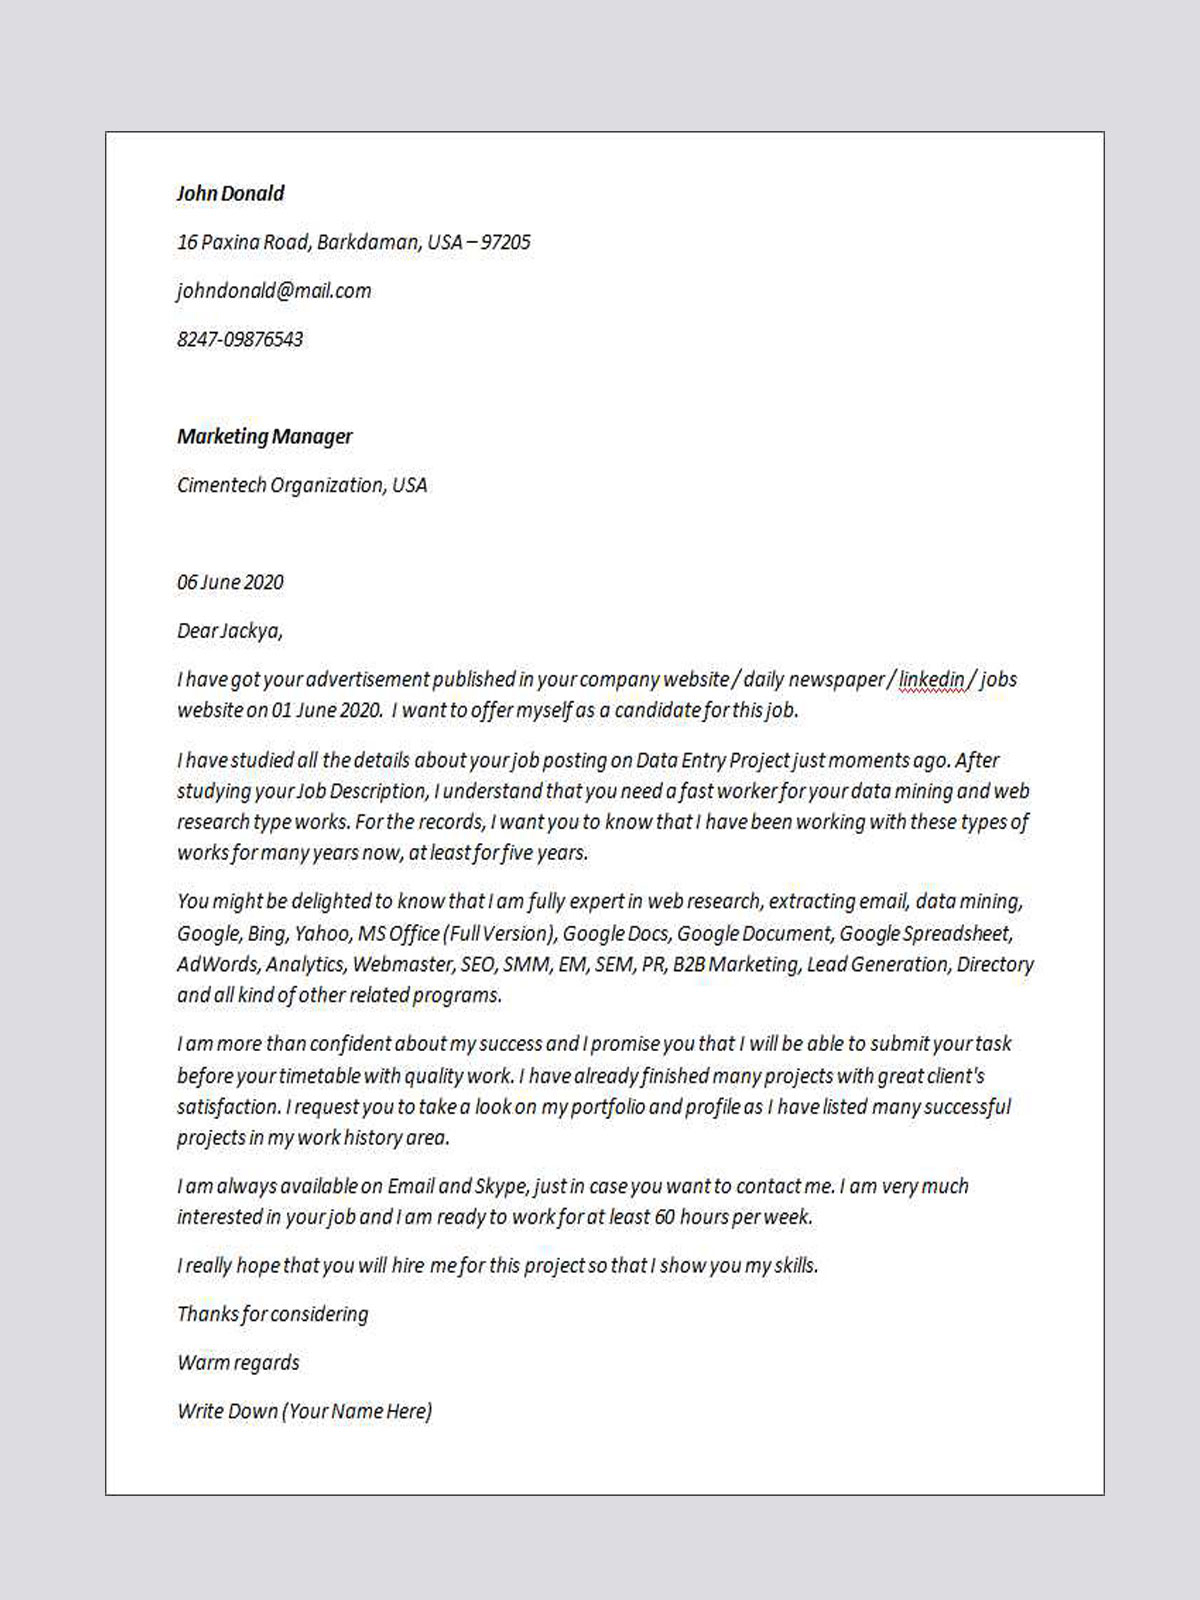 Upwork Cover Letter Template Samples Letter Templates